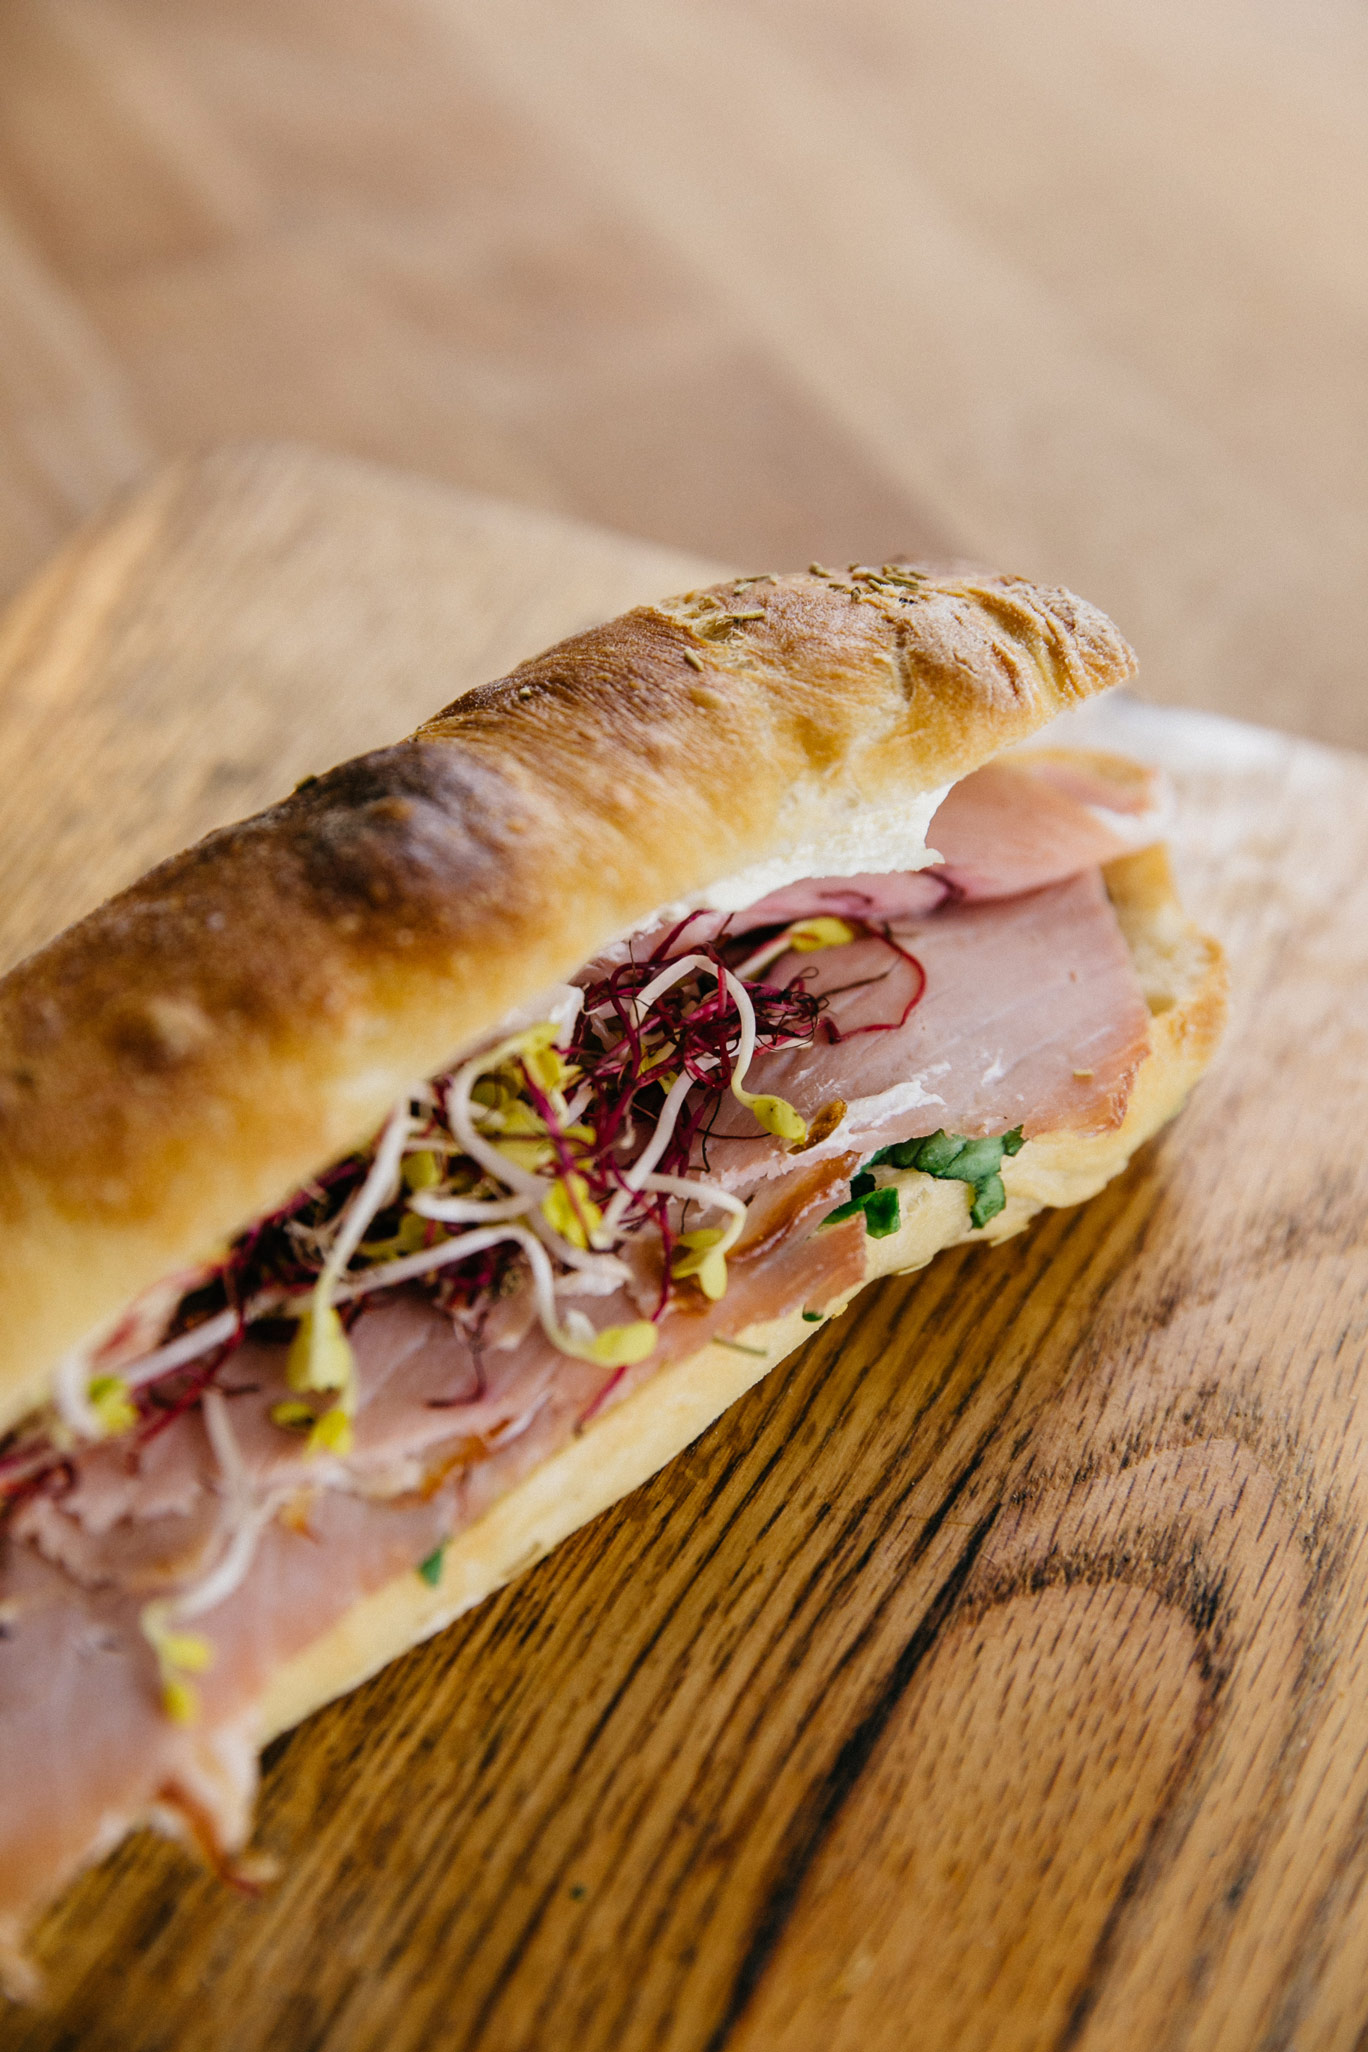 Our rosemary ciabatta with ham, cream cheese and sprouts